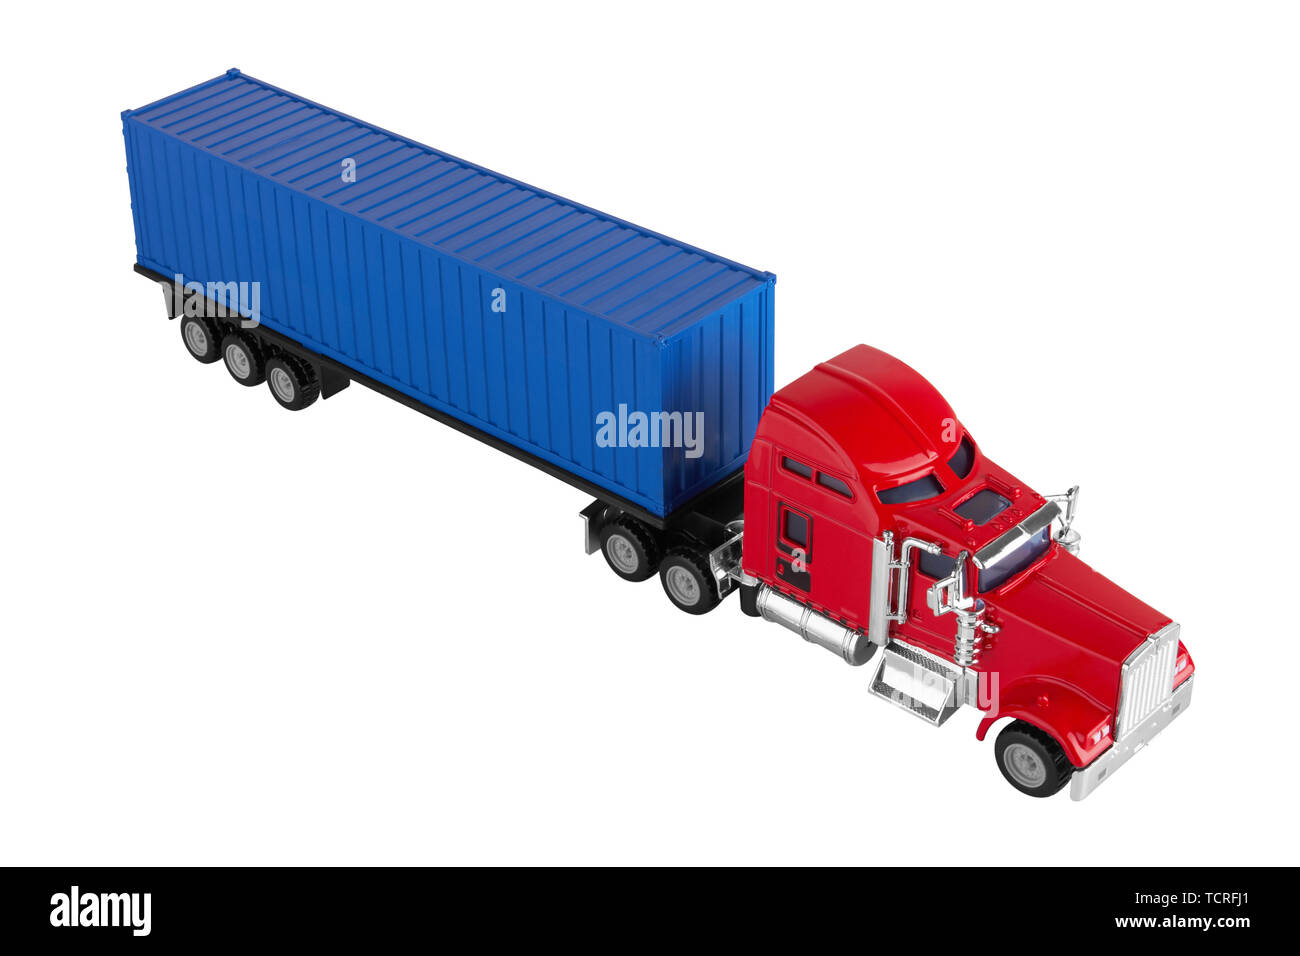 Truck with cargo container isolated on white background. Model. - Stock Image